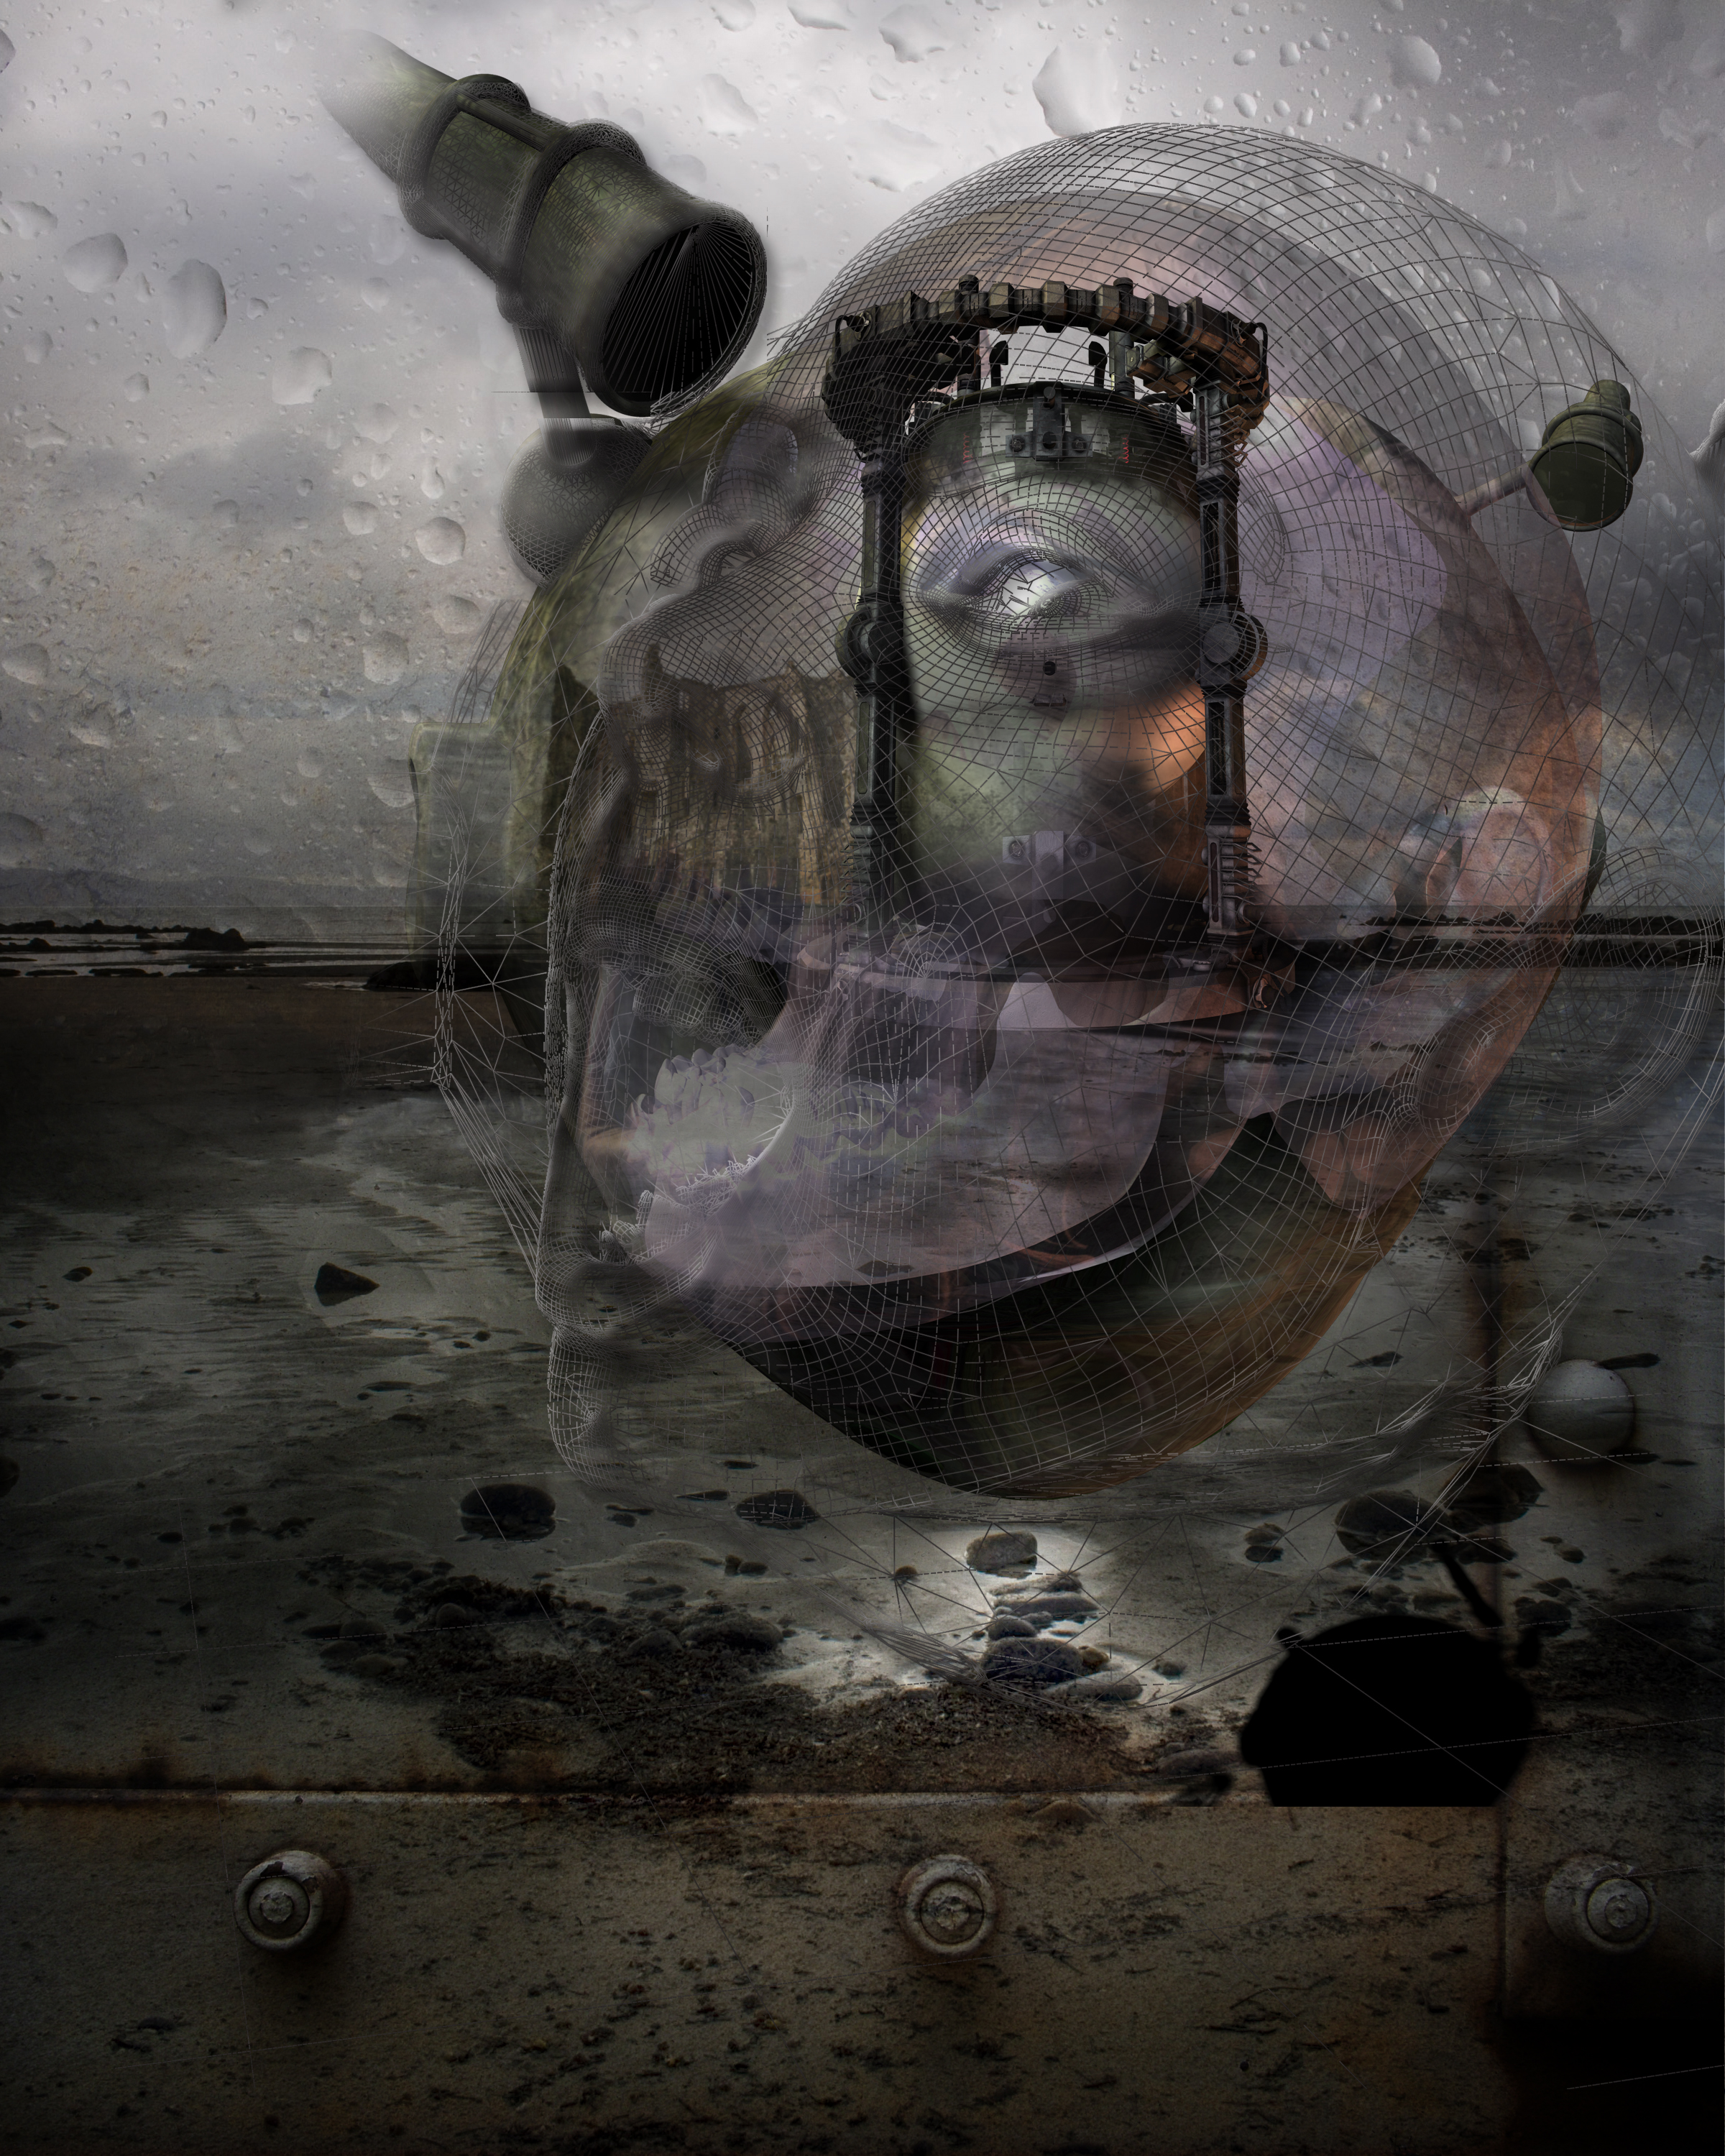 Surreal image of rainy gray beach framed at bottom with rusted metal plate. Large glass steampunk pressure chamber in distance, visible through open-mouthed female head rendered in wireframe, with wireframe skull underneath. The head looks through the wrong end of a piece of telescope equipment attached to itself.